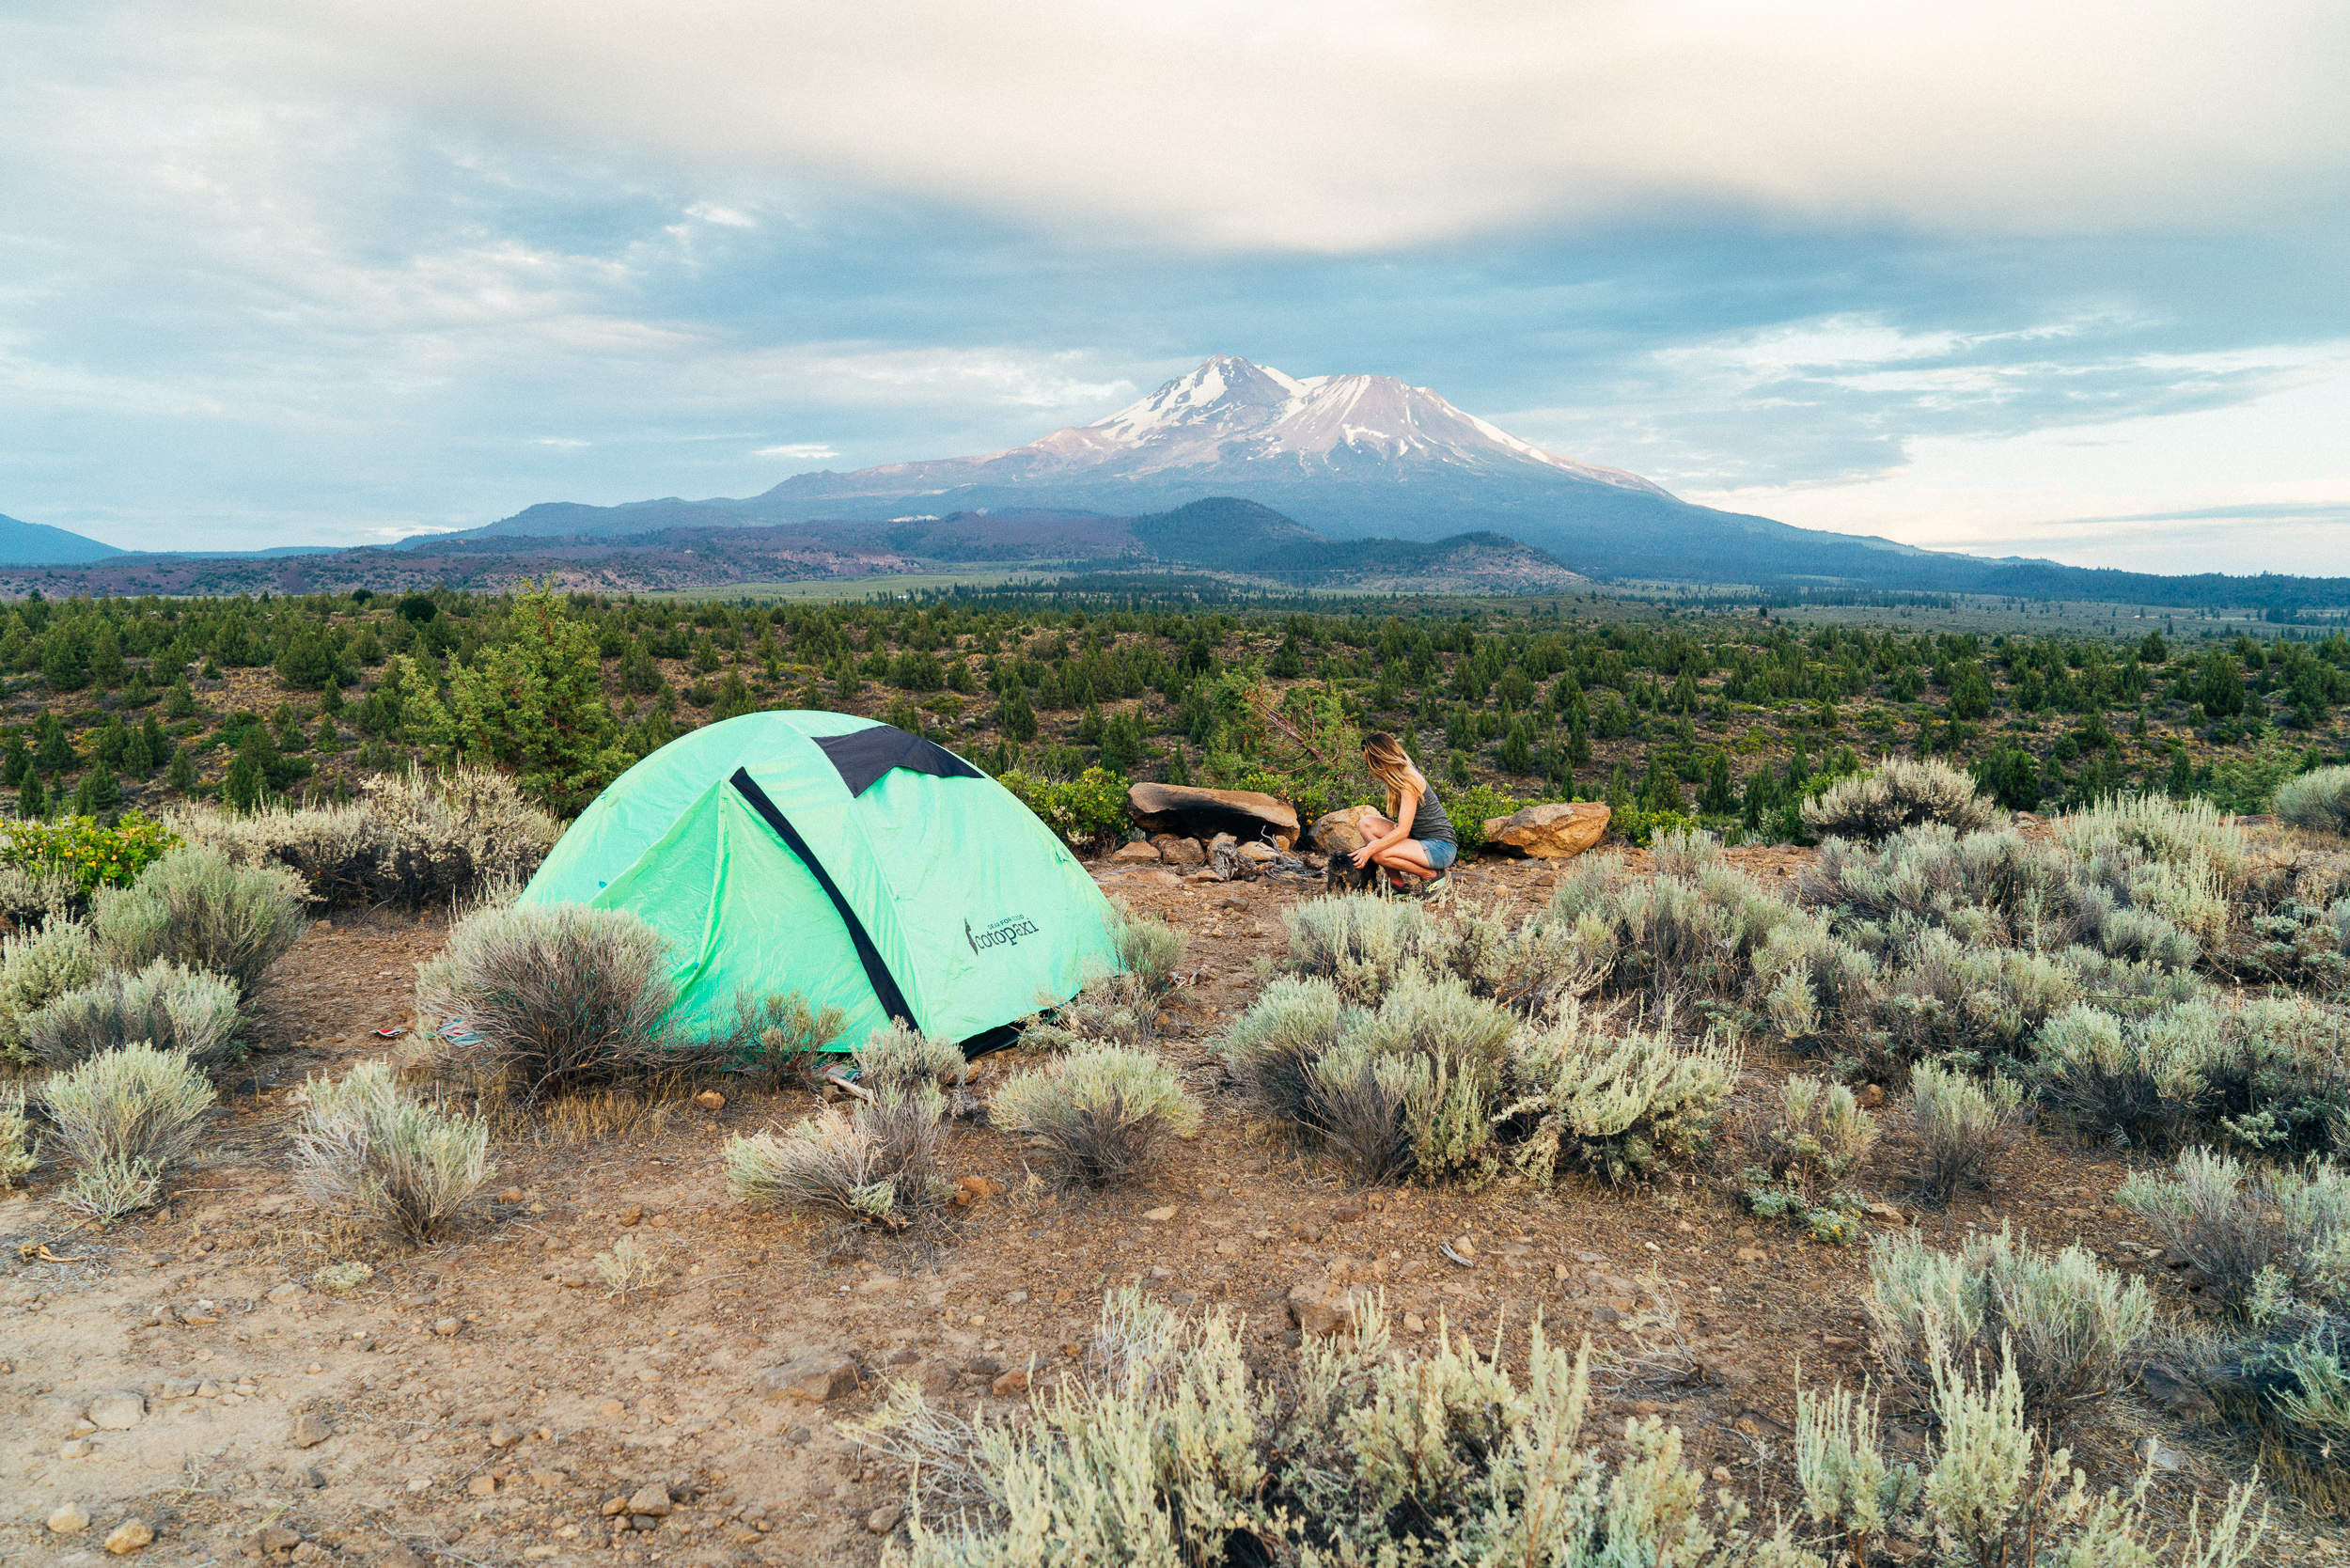 A photo of me, Juliana, petting my dog Roscoe. There's lots of fragrant silver sage brush surrounding us. Our teal tent is set up near us, with Mount Shasta in the background.